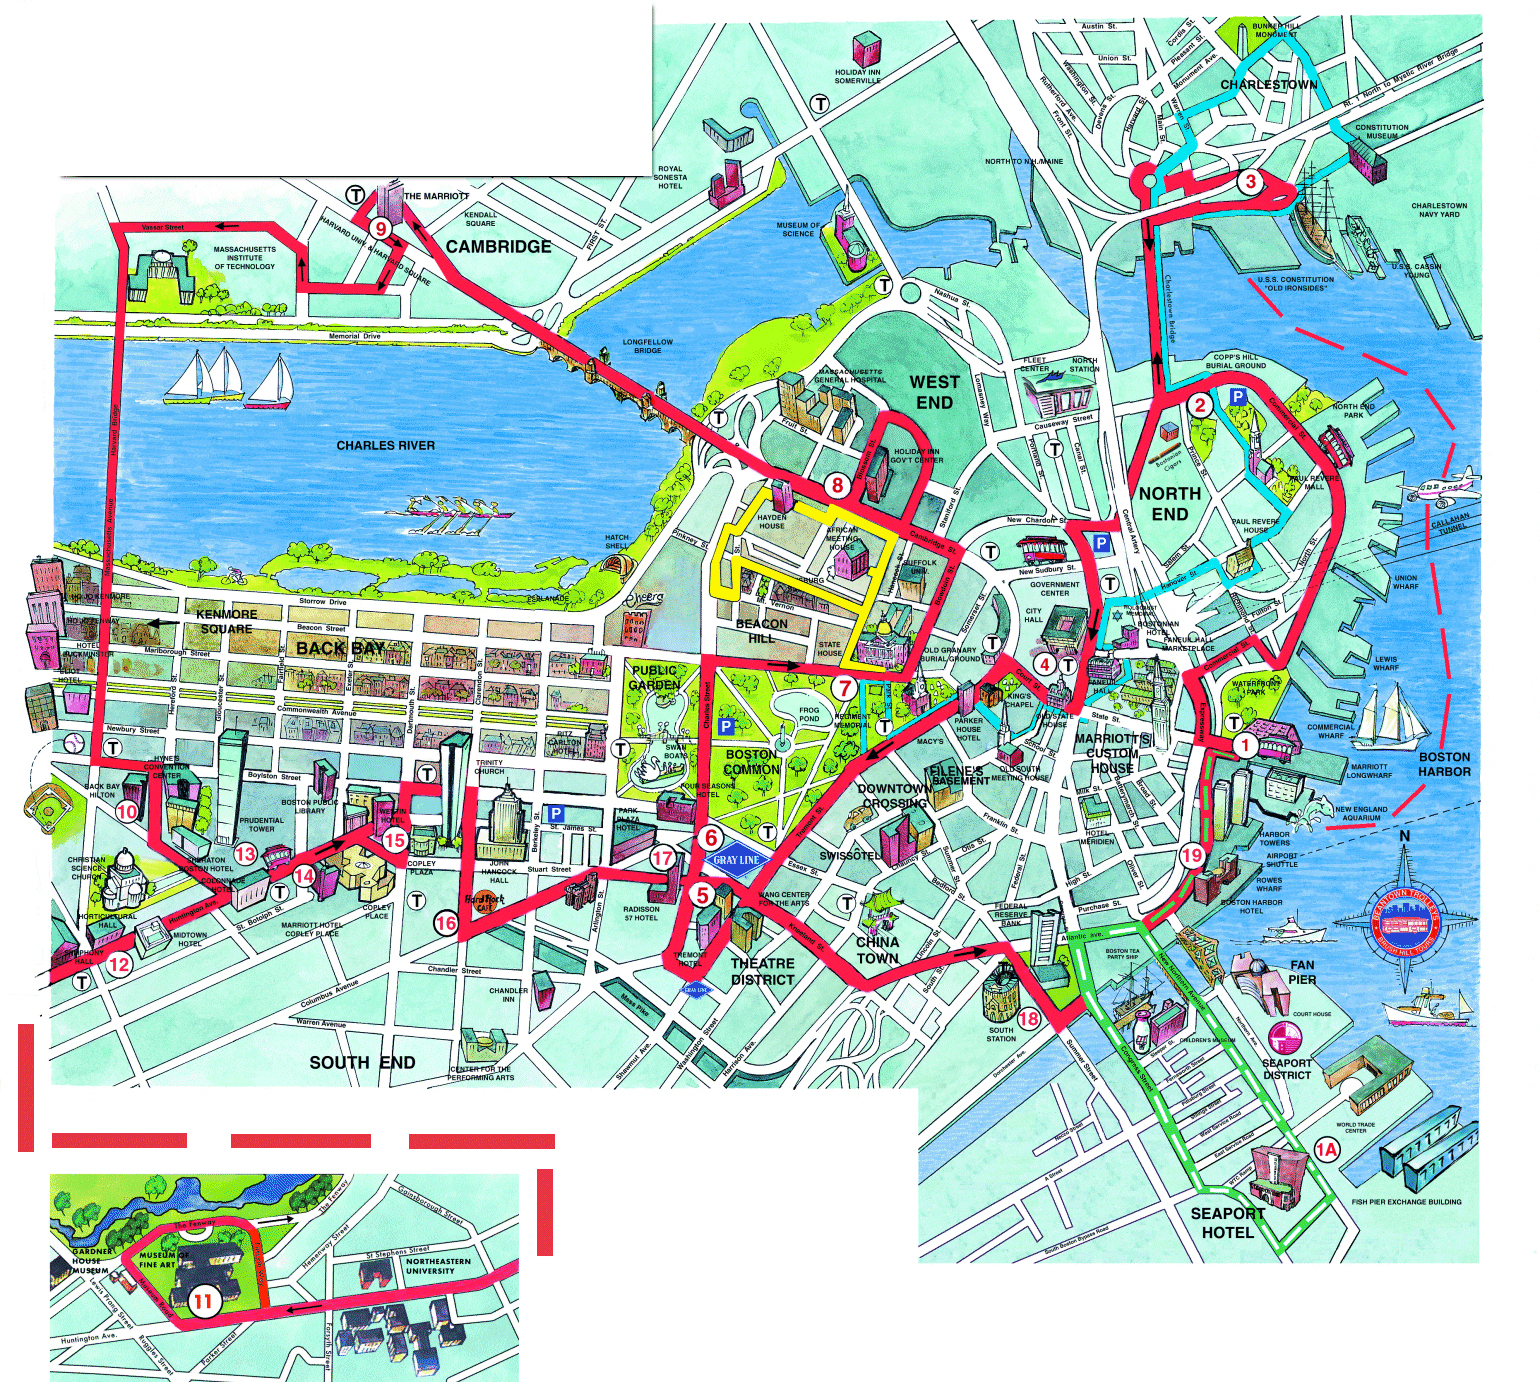 Boston Tourist Map And Travel Information | Download Free Boston - Boston Tourist Map Printable